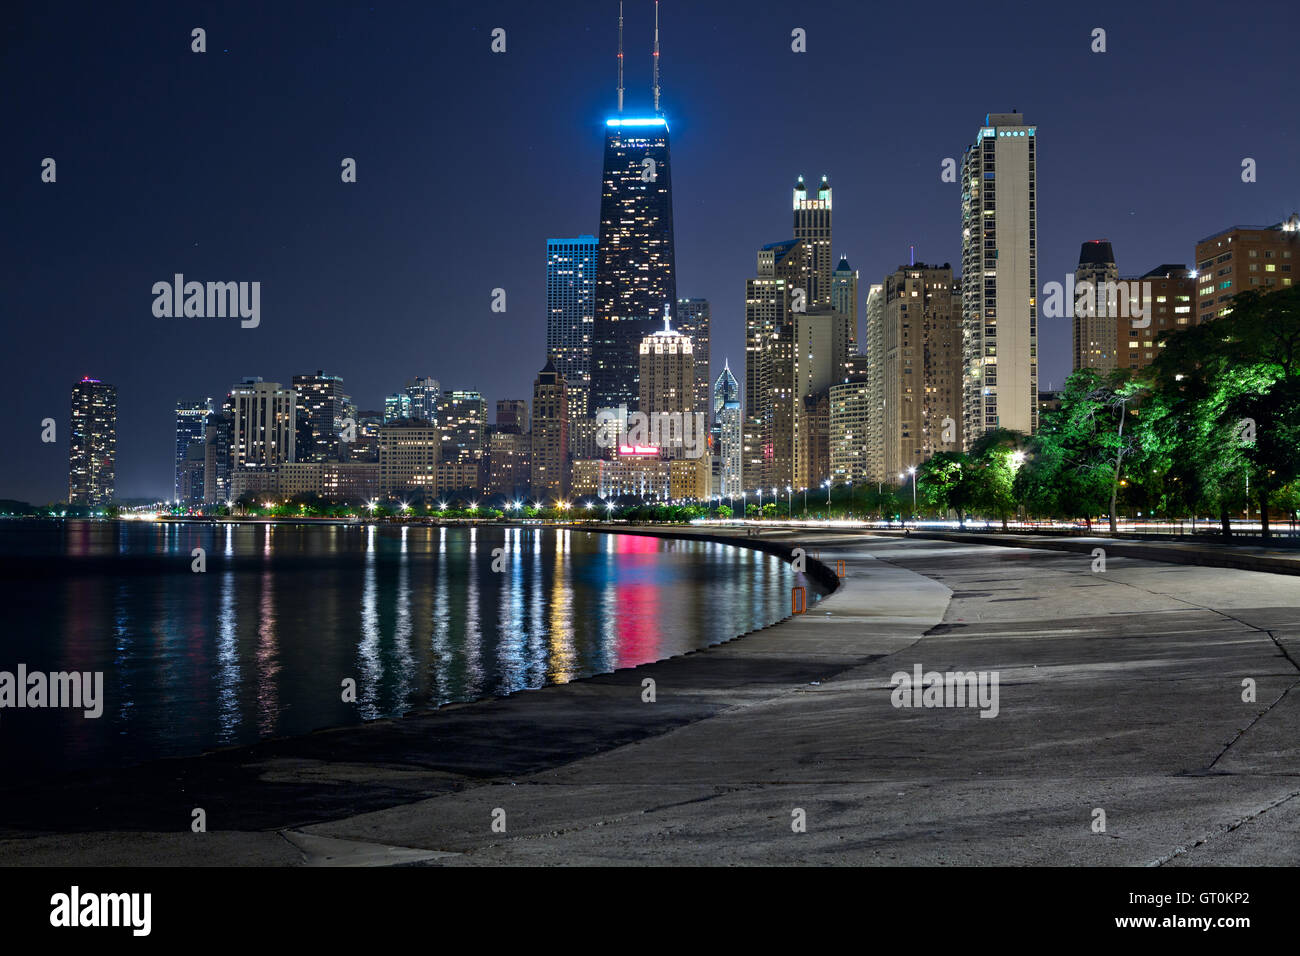 Chicago skyline. Image of the Chicago downtown lakefront at night. - Stock Image